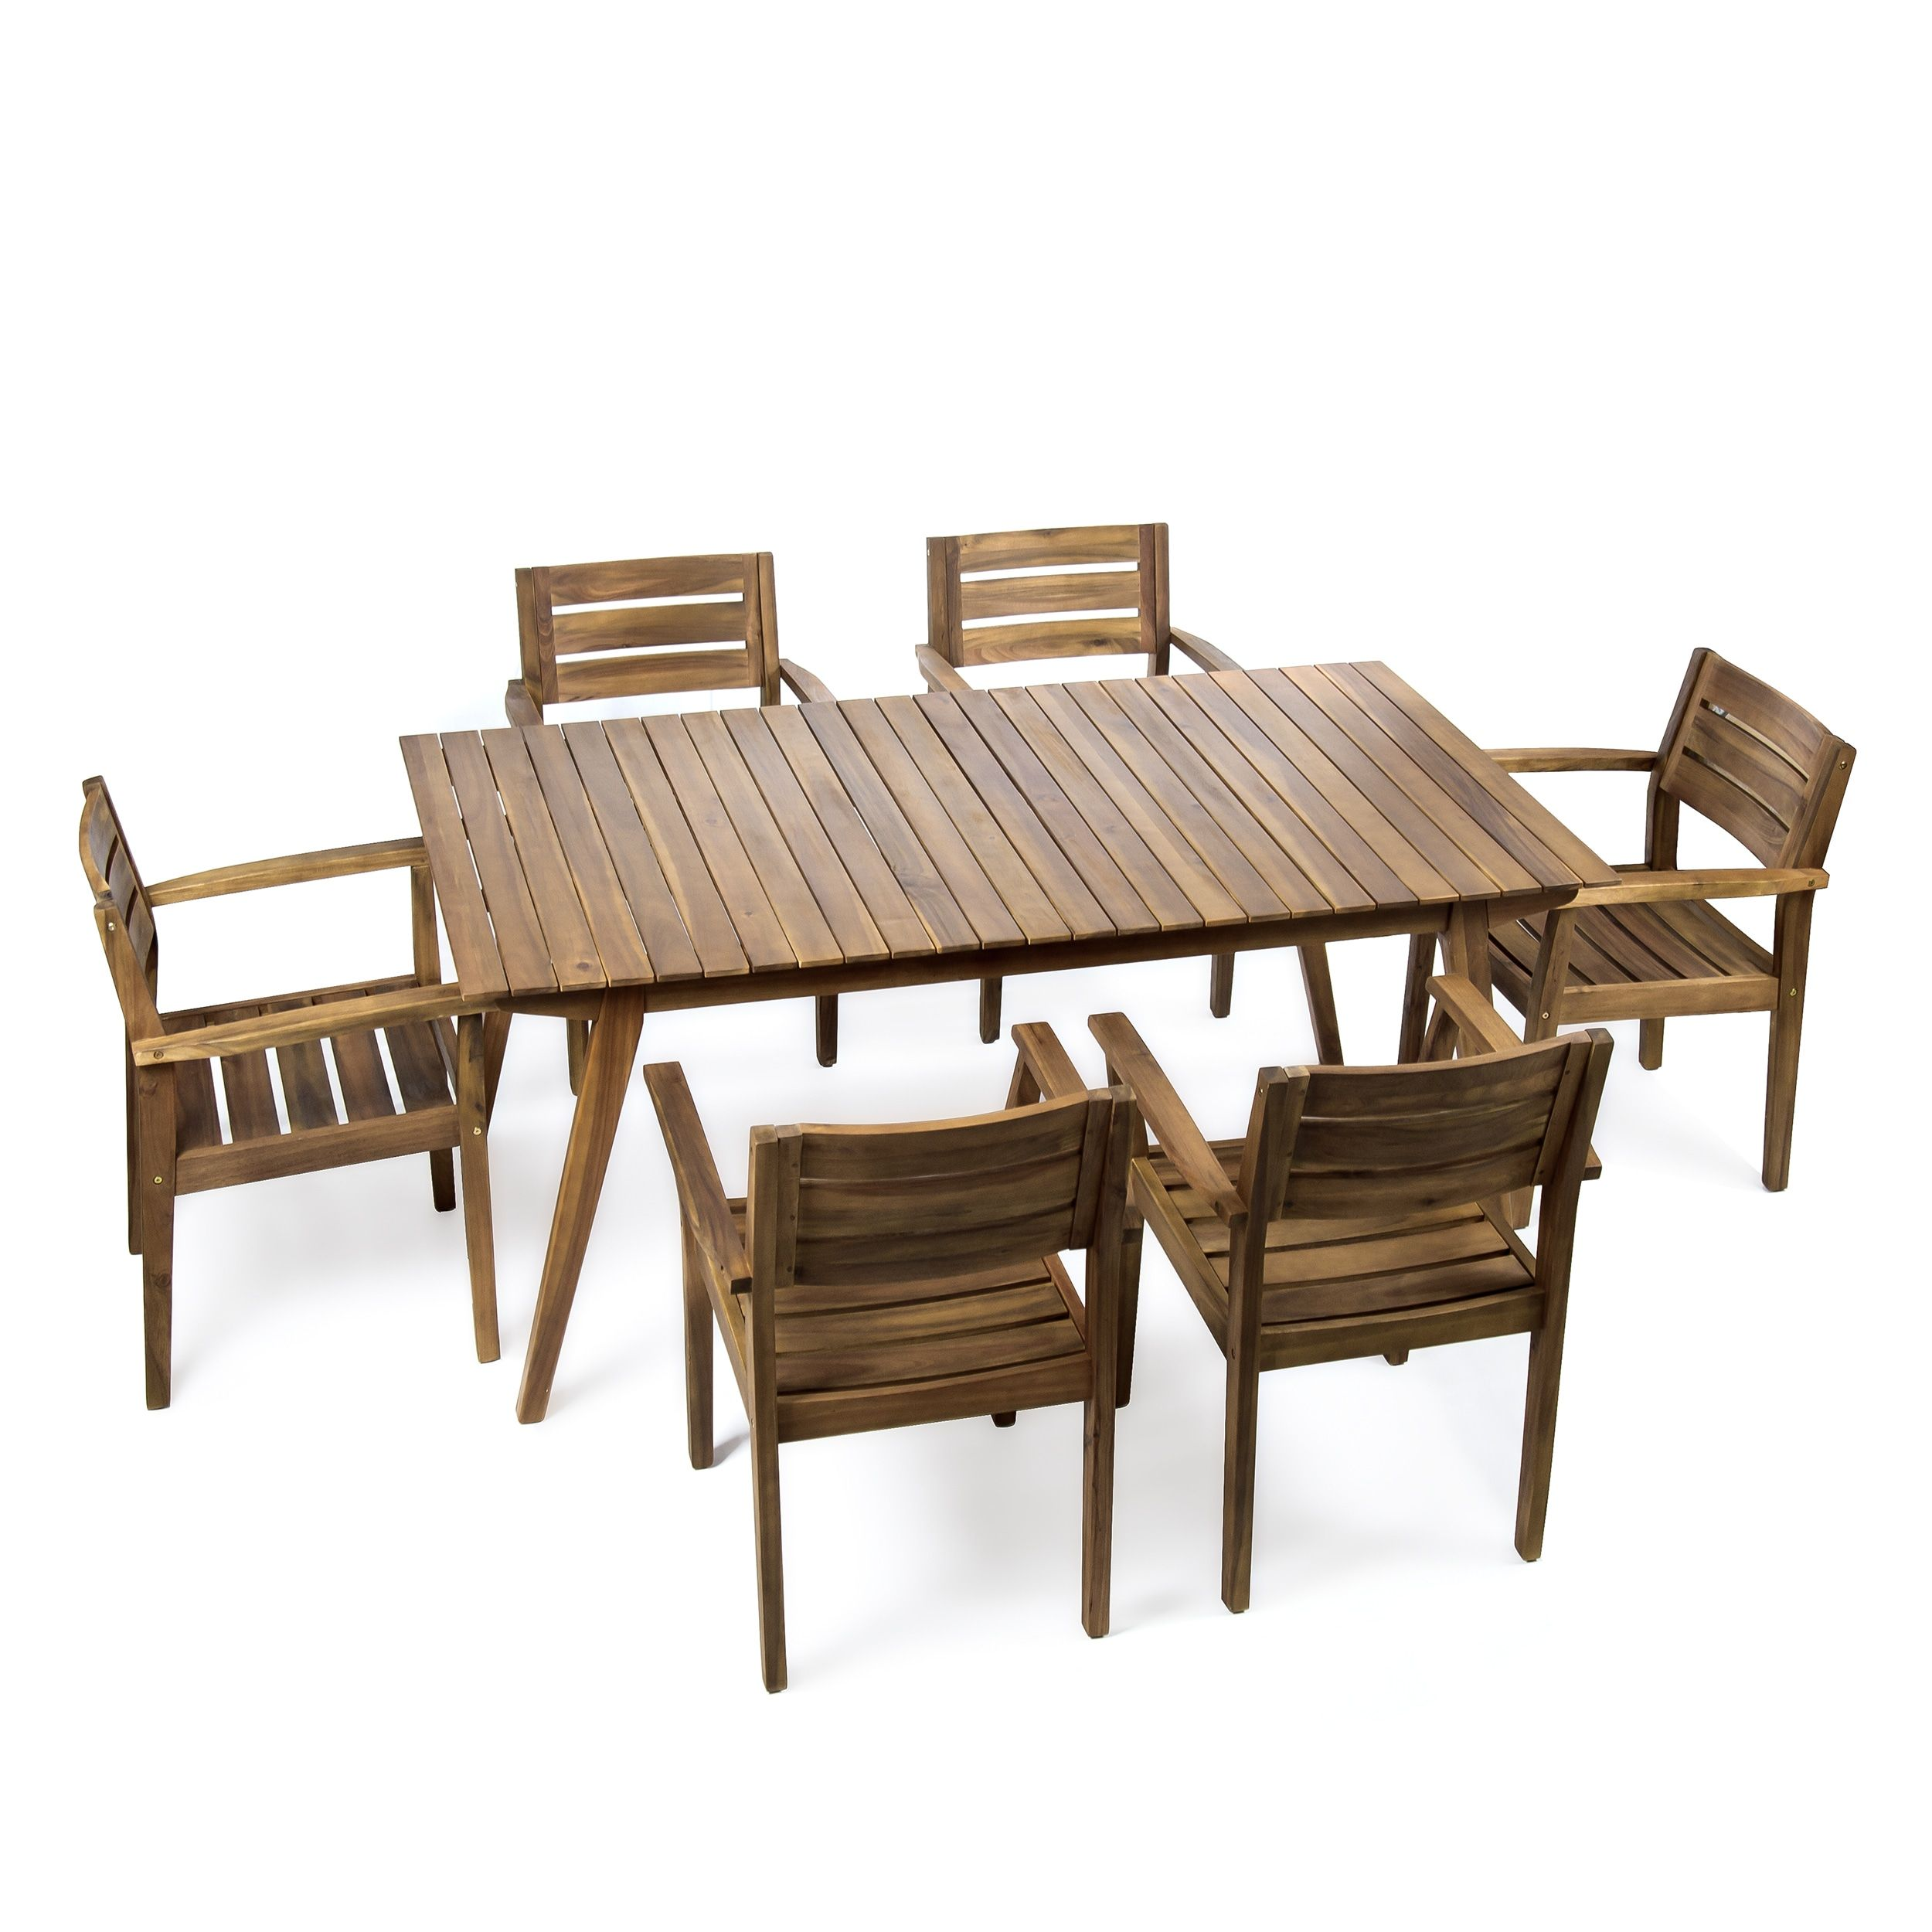 Taiga Outdoor 7 Piece Rectangle Wood Dining Set By Christopher Knight Home Teak Finish Brown Acacia 7 Piece Dining Set Wicker Dining Set Used Outdoor Furniture